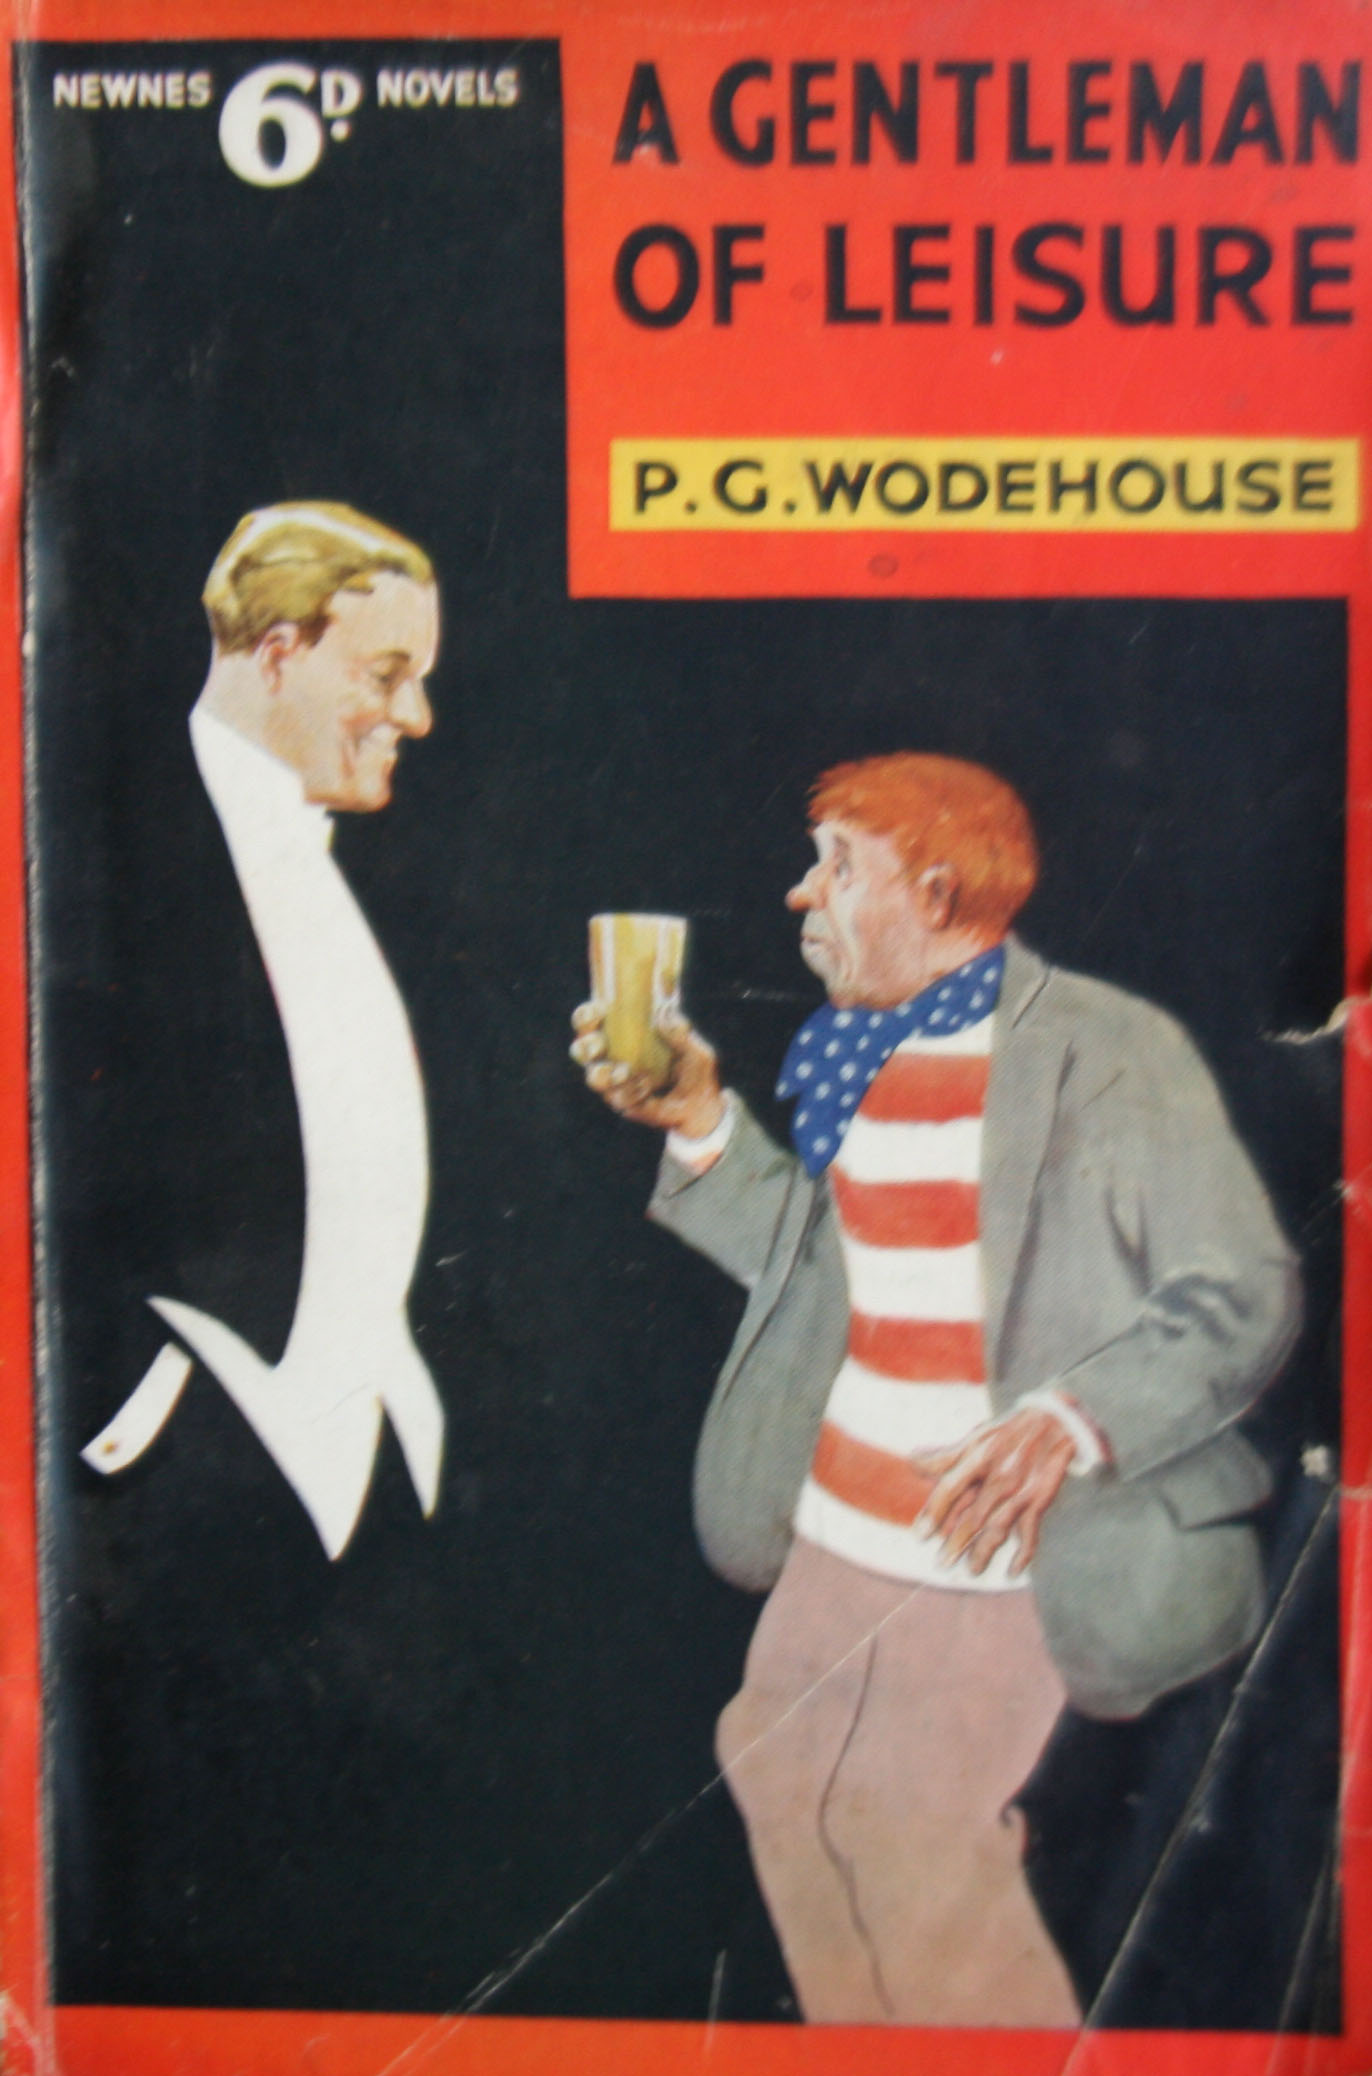 P G Wodehouse A Gentleman of leisure